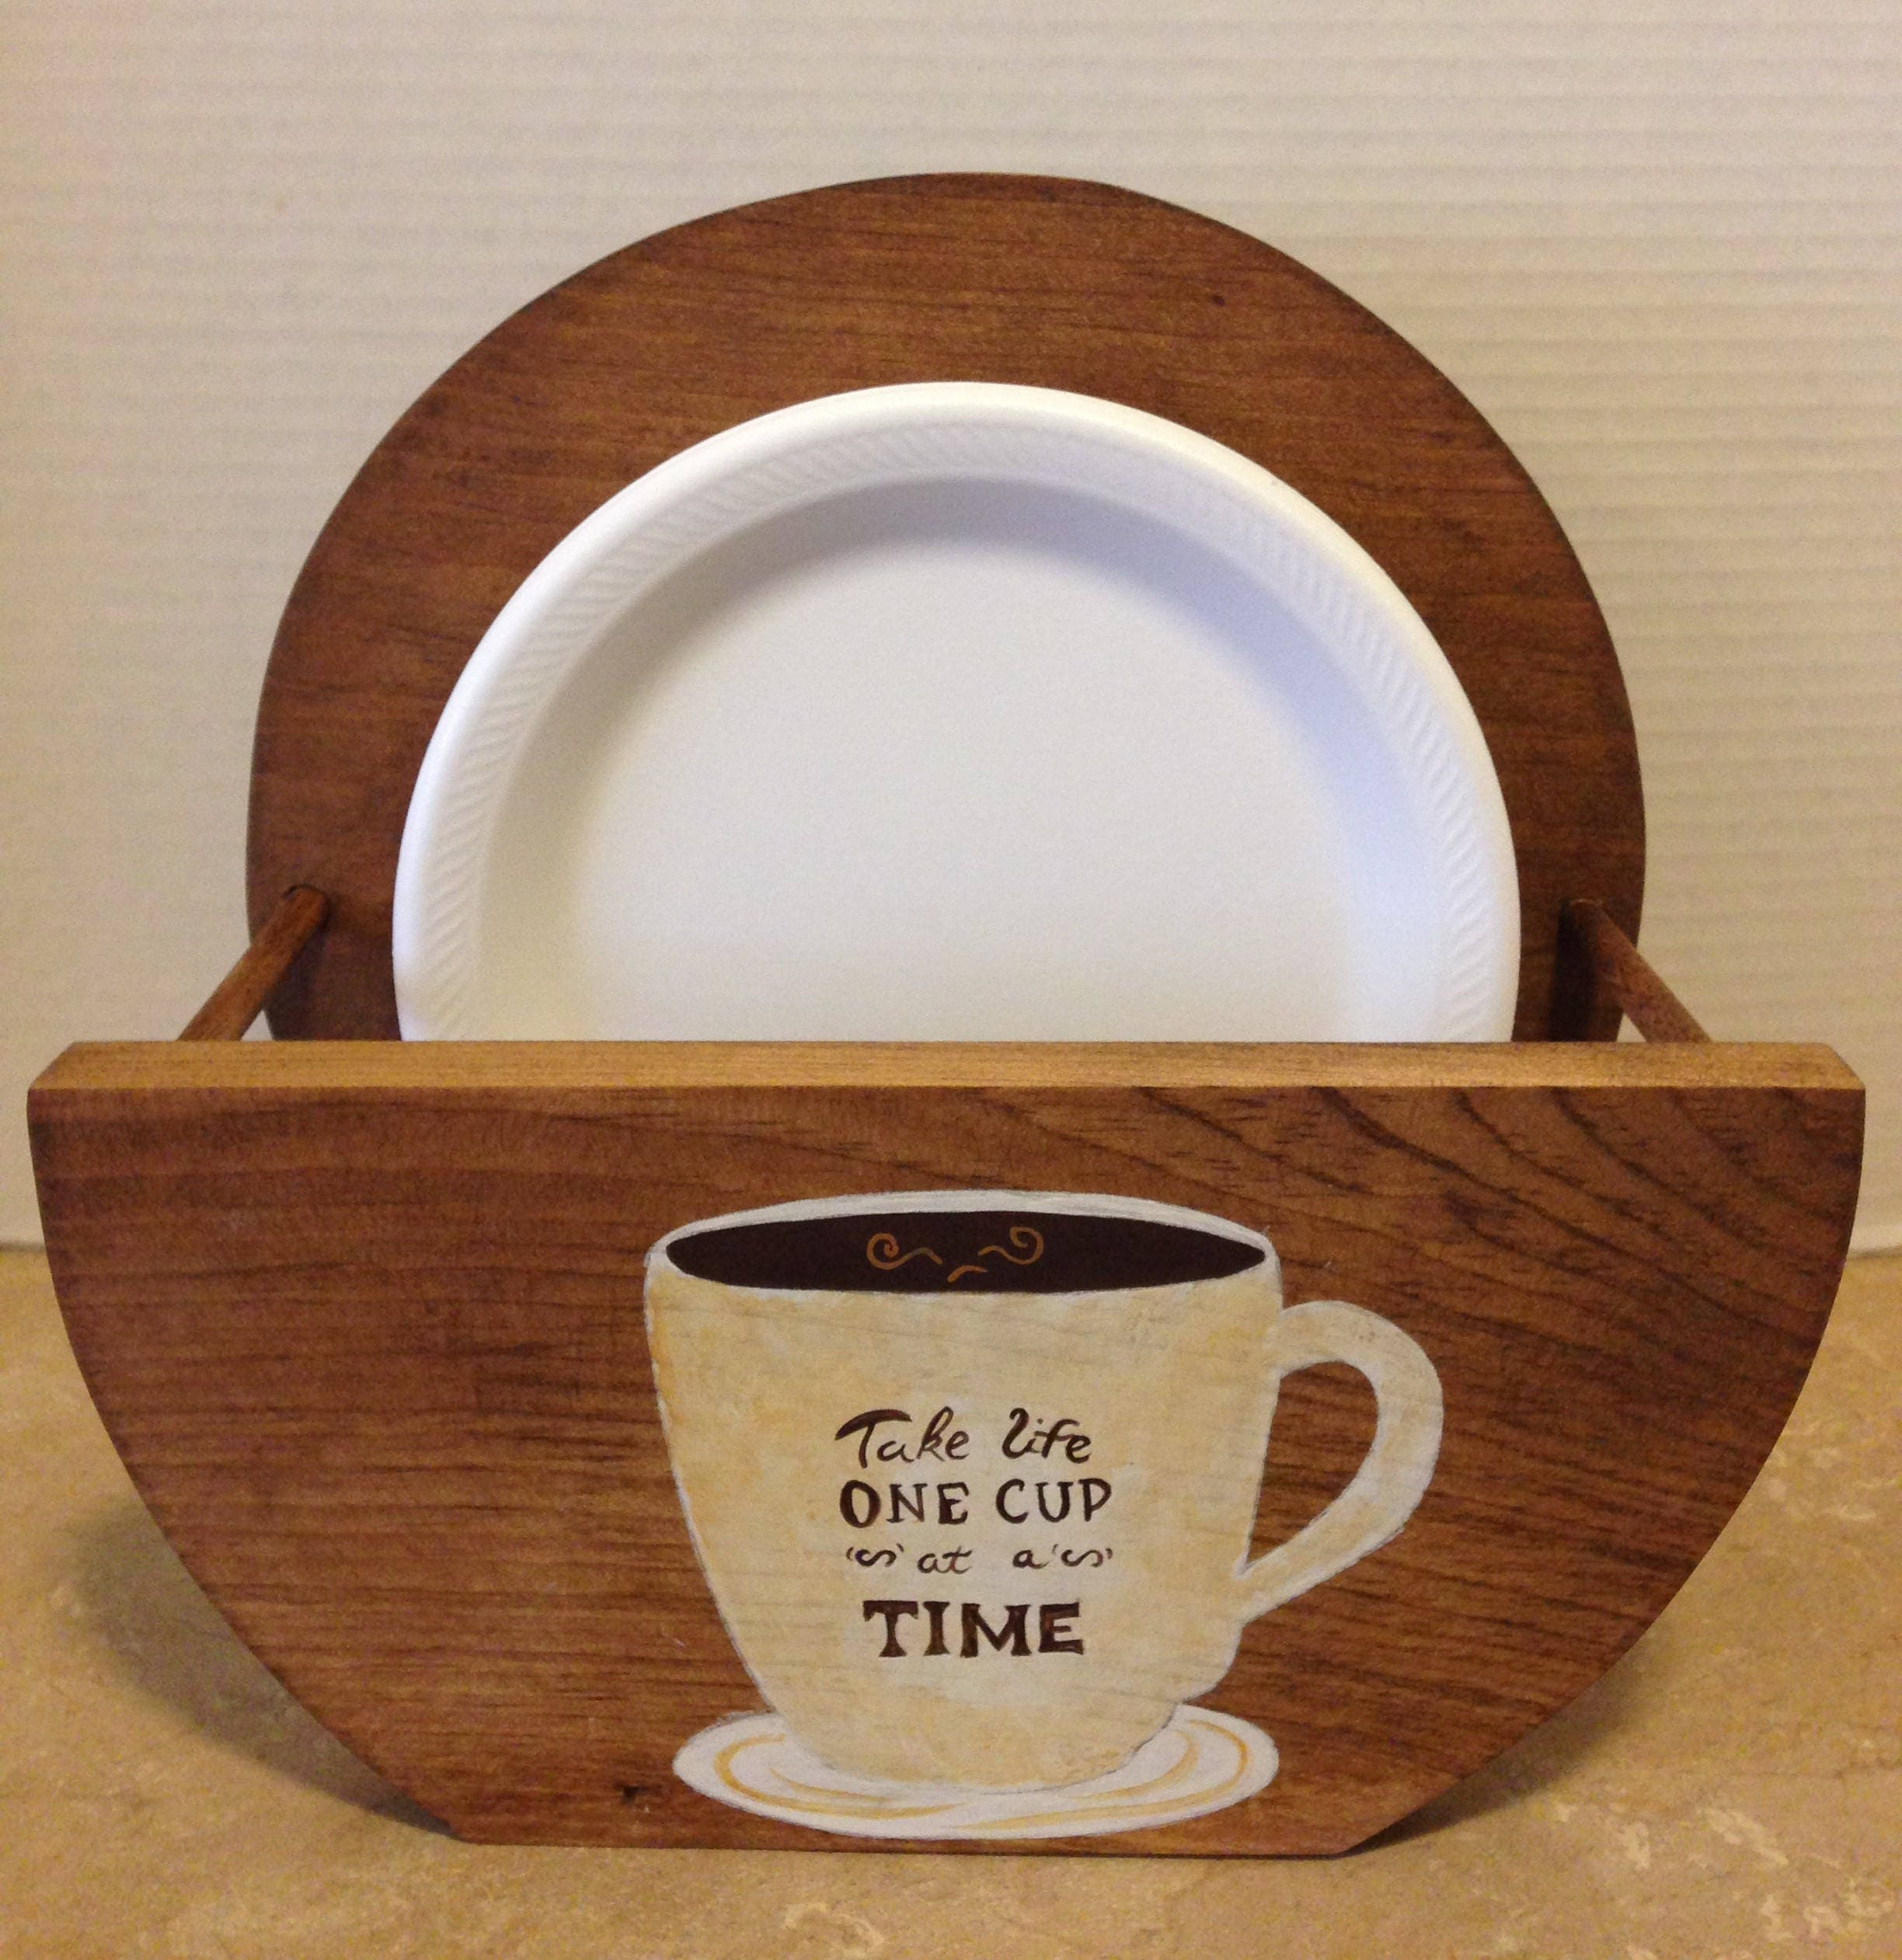 Paper Plate Holder Holder for Plates Paper Plates Wooden Plate Holder Coffee Decor Bistro Decor Coffee Lovers Gift Coffee Gift : paper plates holder - pezcame.com